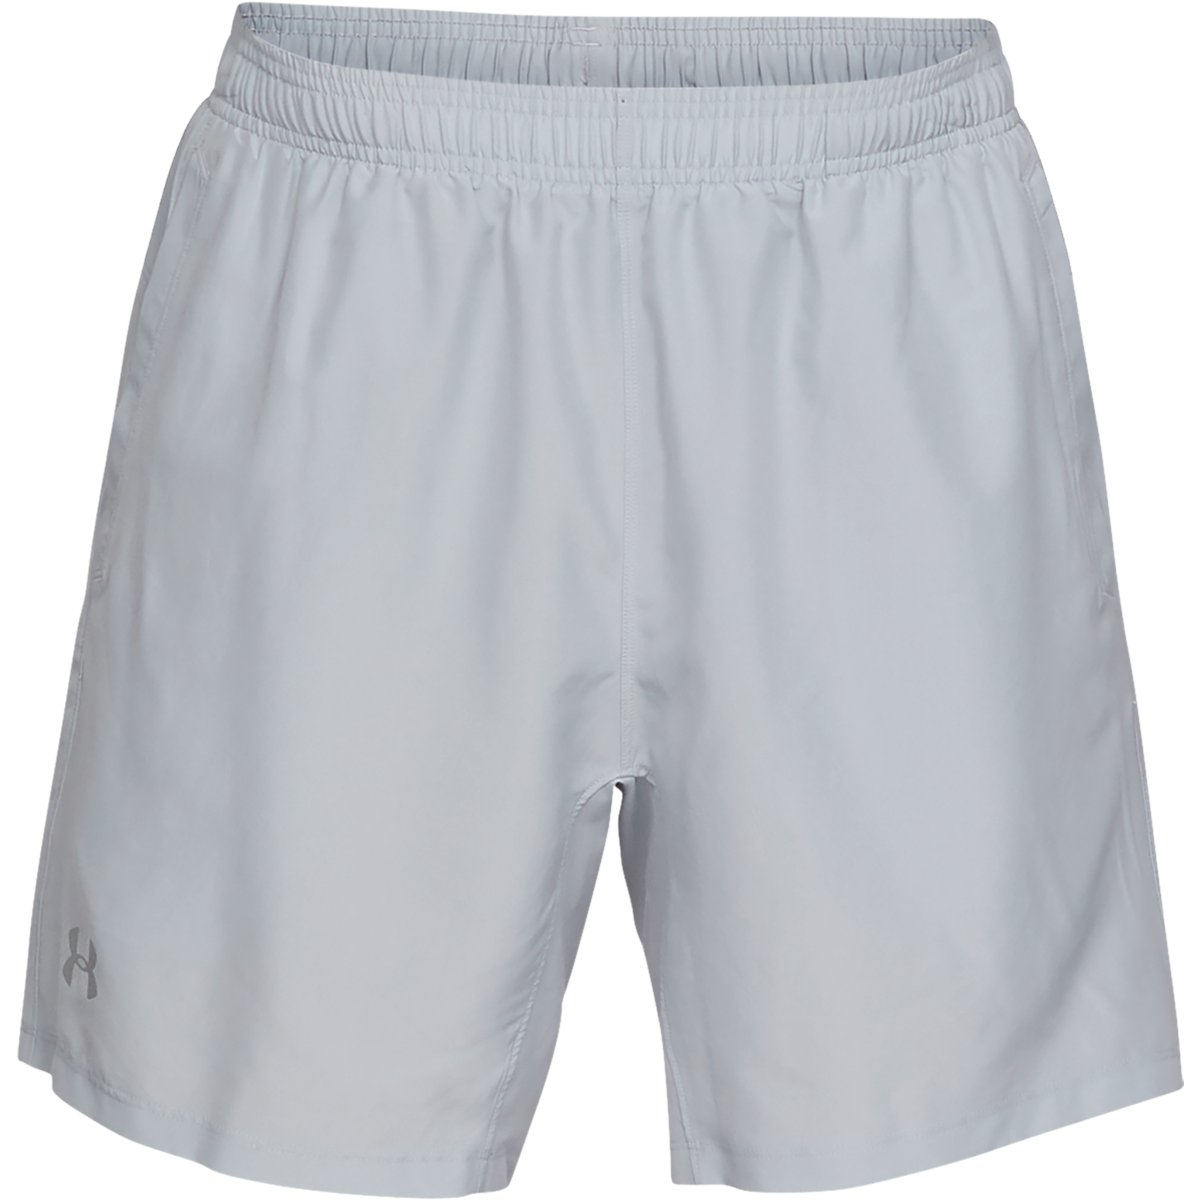 "Under Armour Speed Stride Woven 7"" Run Short 